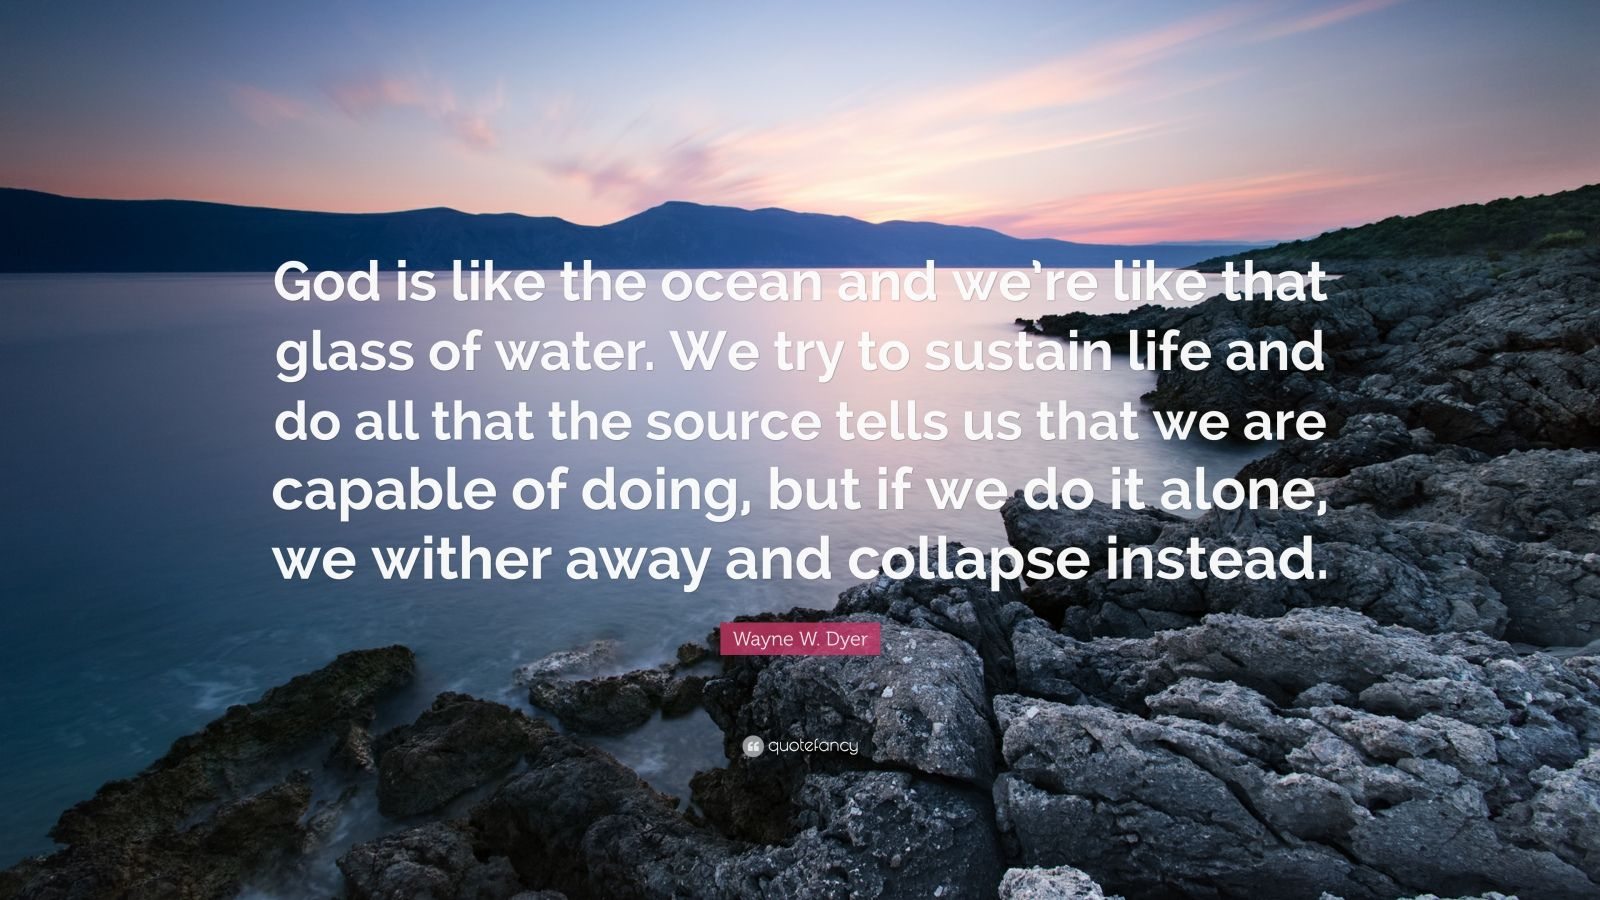 """Wayne W. Dyer Quote: """"God is like the ocean and we're like that glass of water. We try to sustain life and do all that the source tells us that we are capable of doing, but if we do it alone, we wither away and collapse instead."""""""